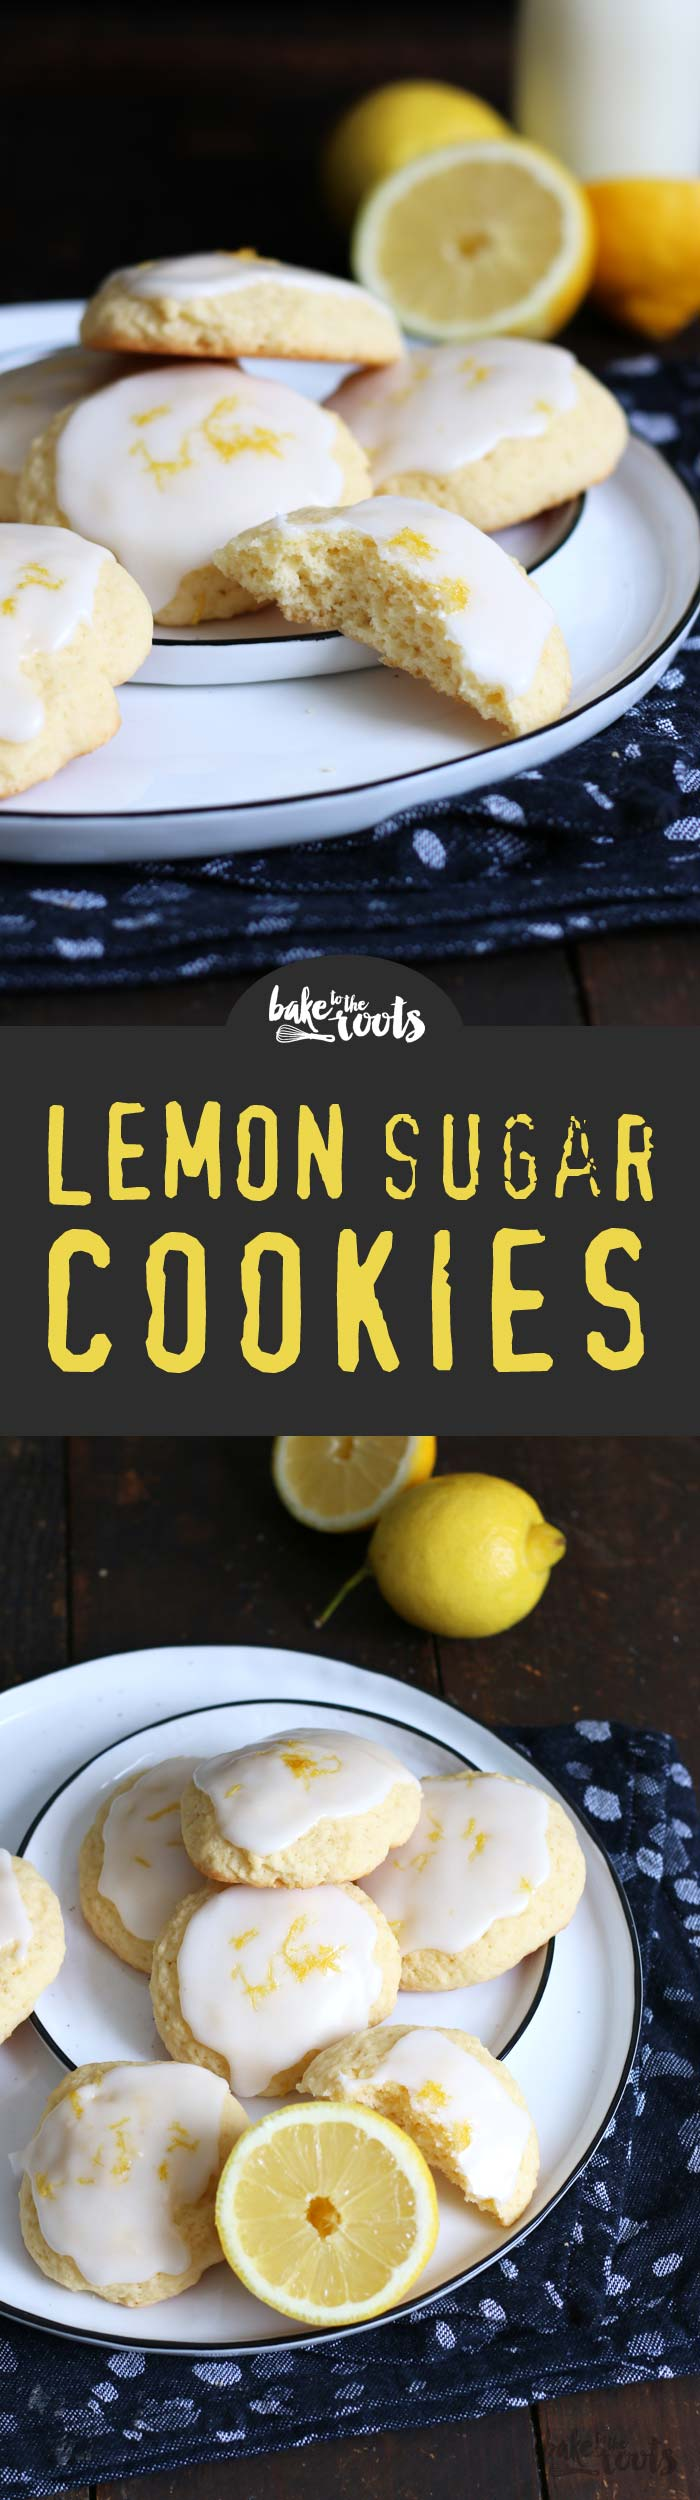 Delicious and easy to prepare sugar cookies with a nice lemon flavor. A refreshing little snack for summer. | Bake to the roots